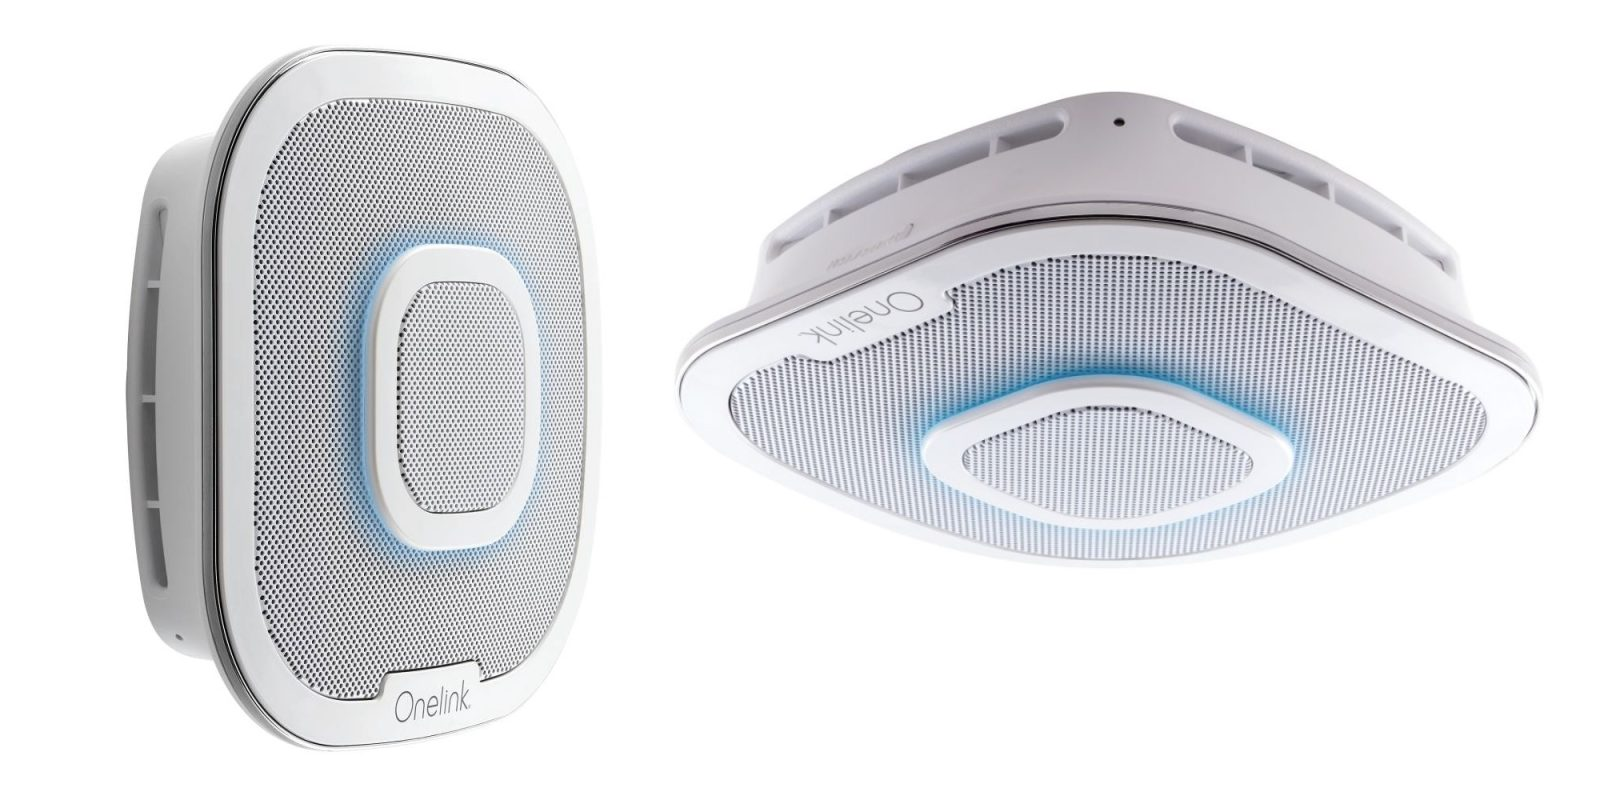 Prime Day takes 35% off First Alert's HomeKit Smoke/CO Detector at $141, more